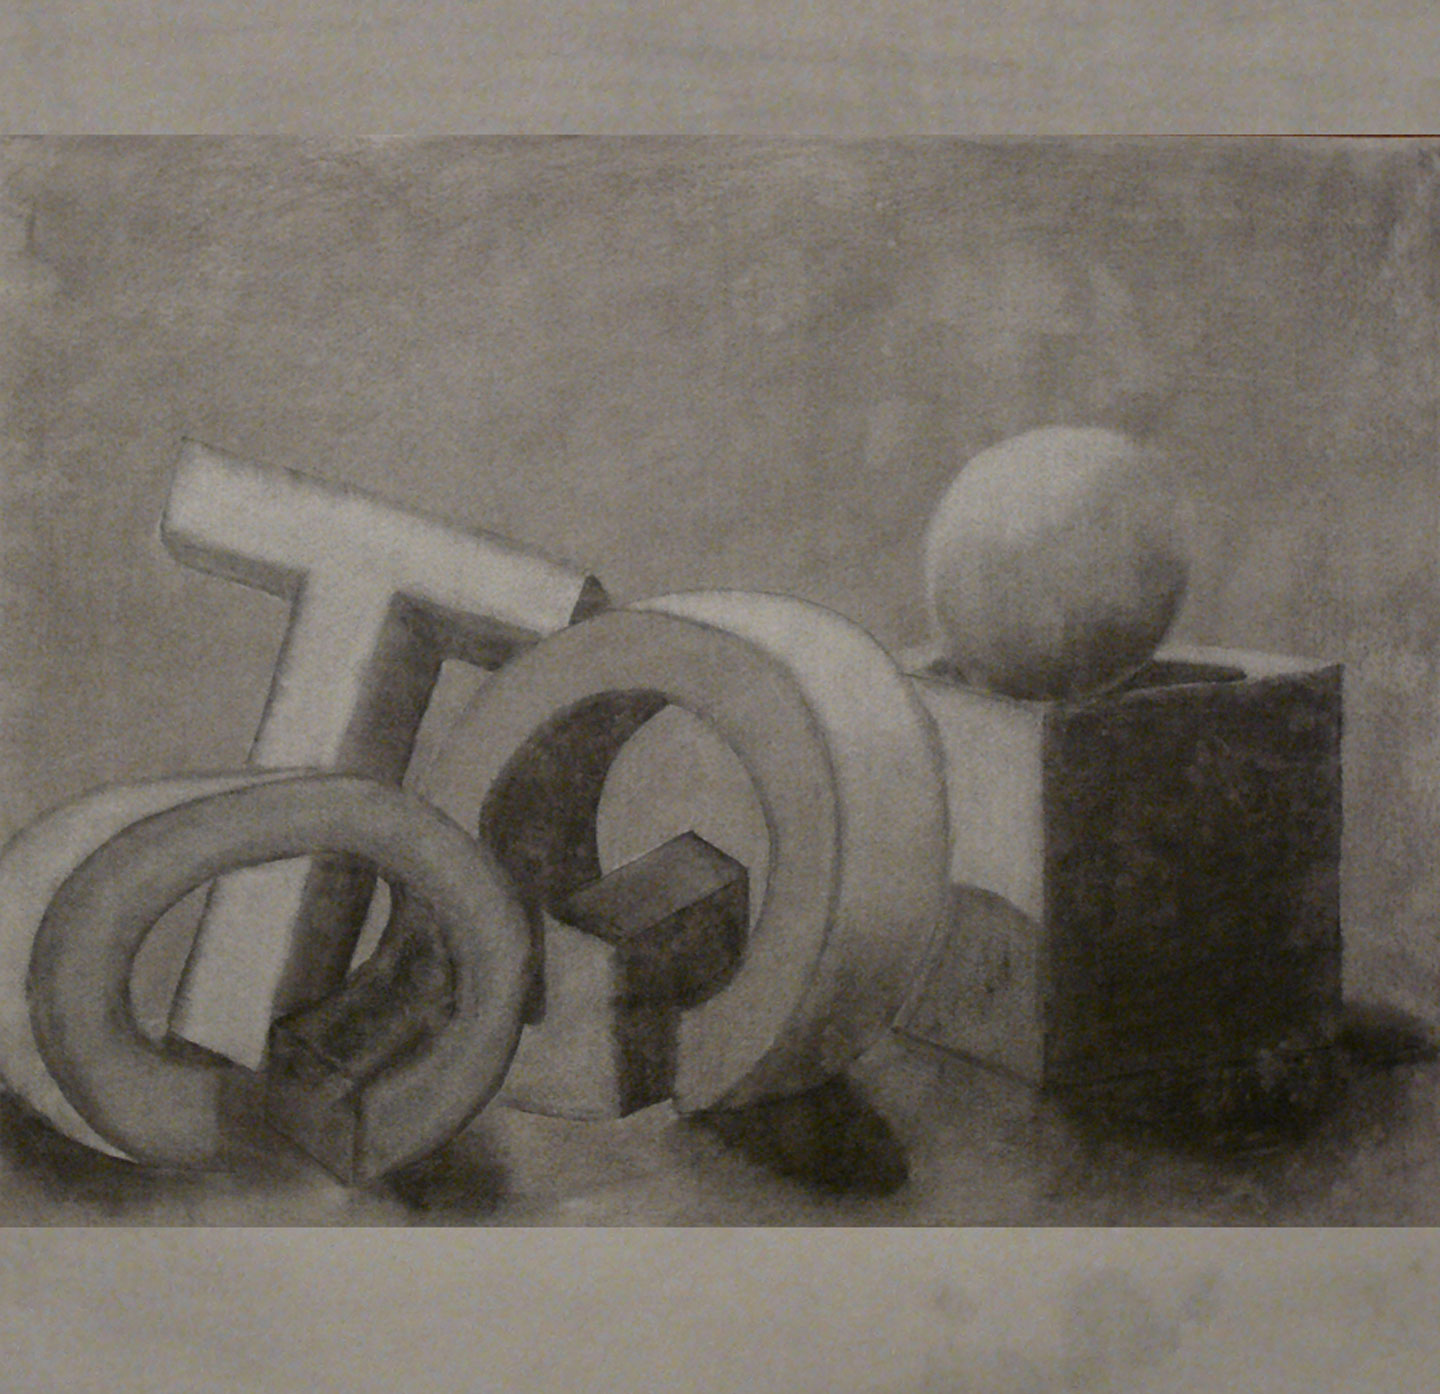 OkolowiczG_Charcoal_Extruded_Letters